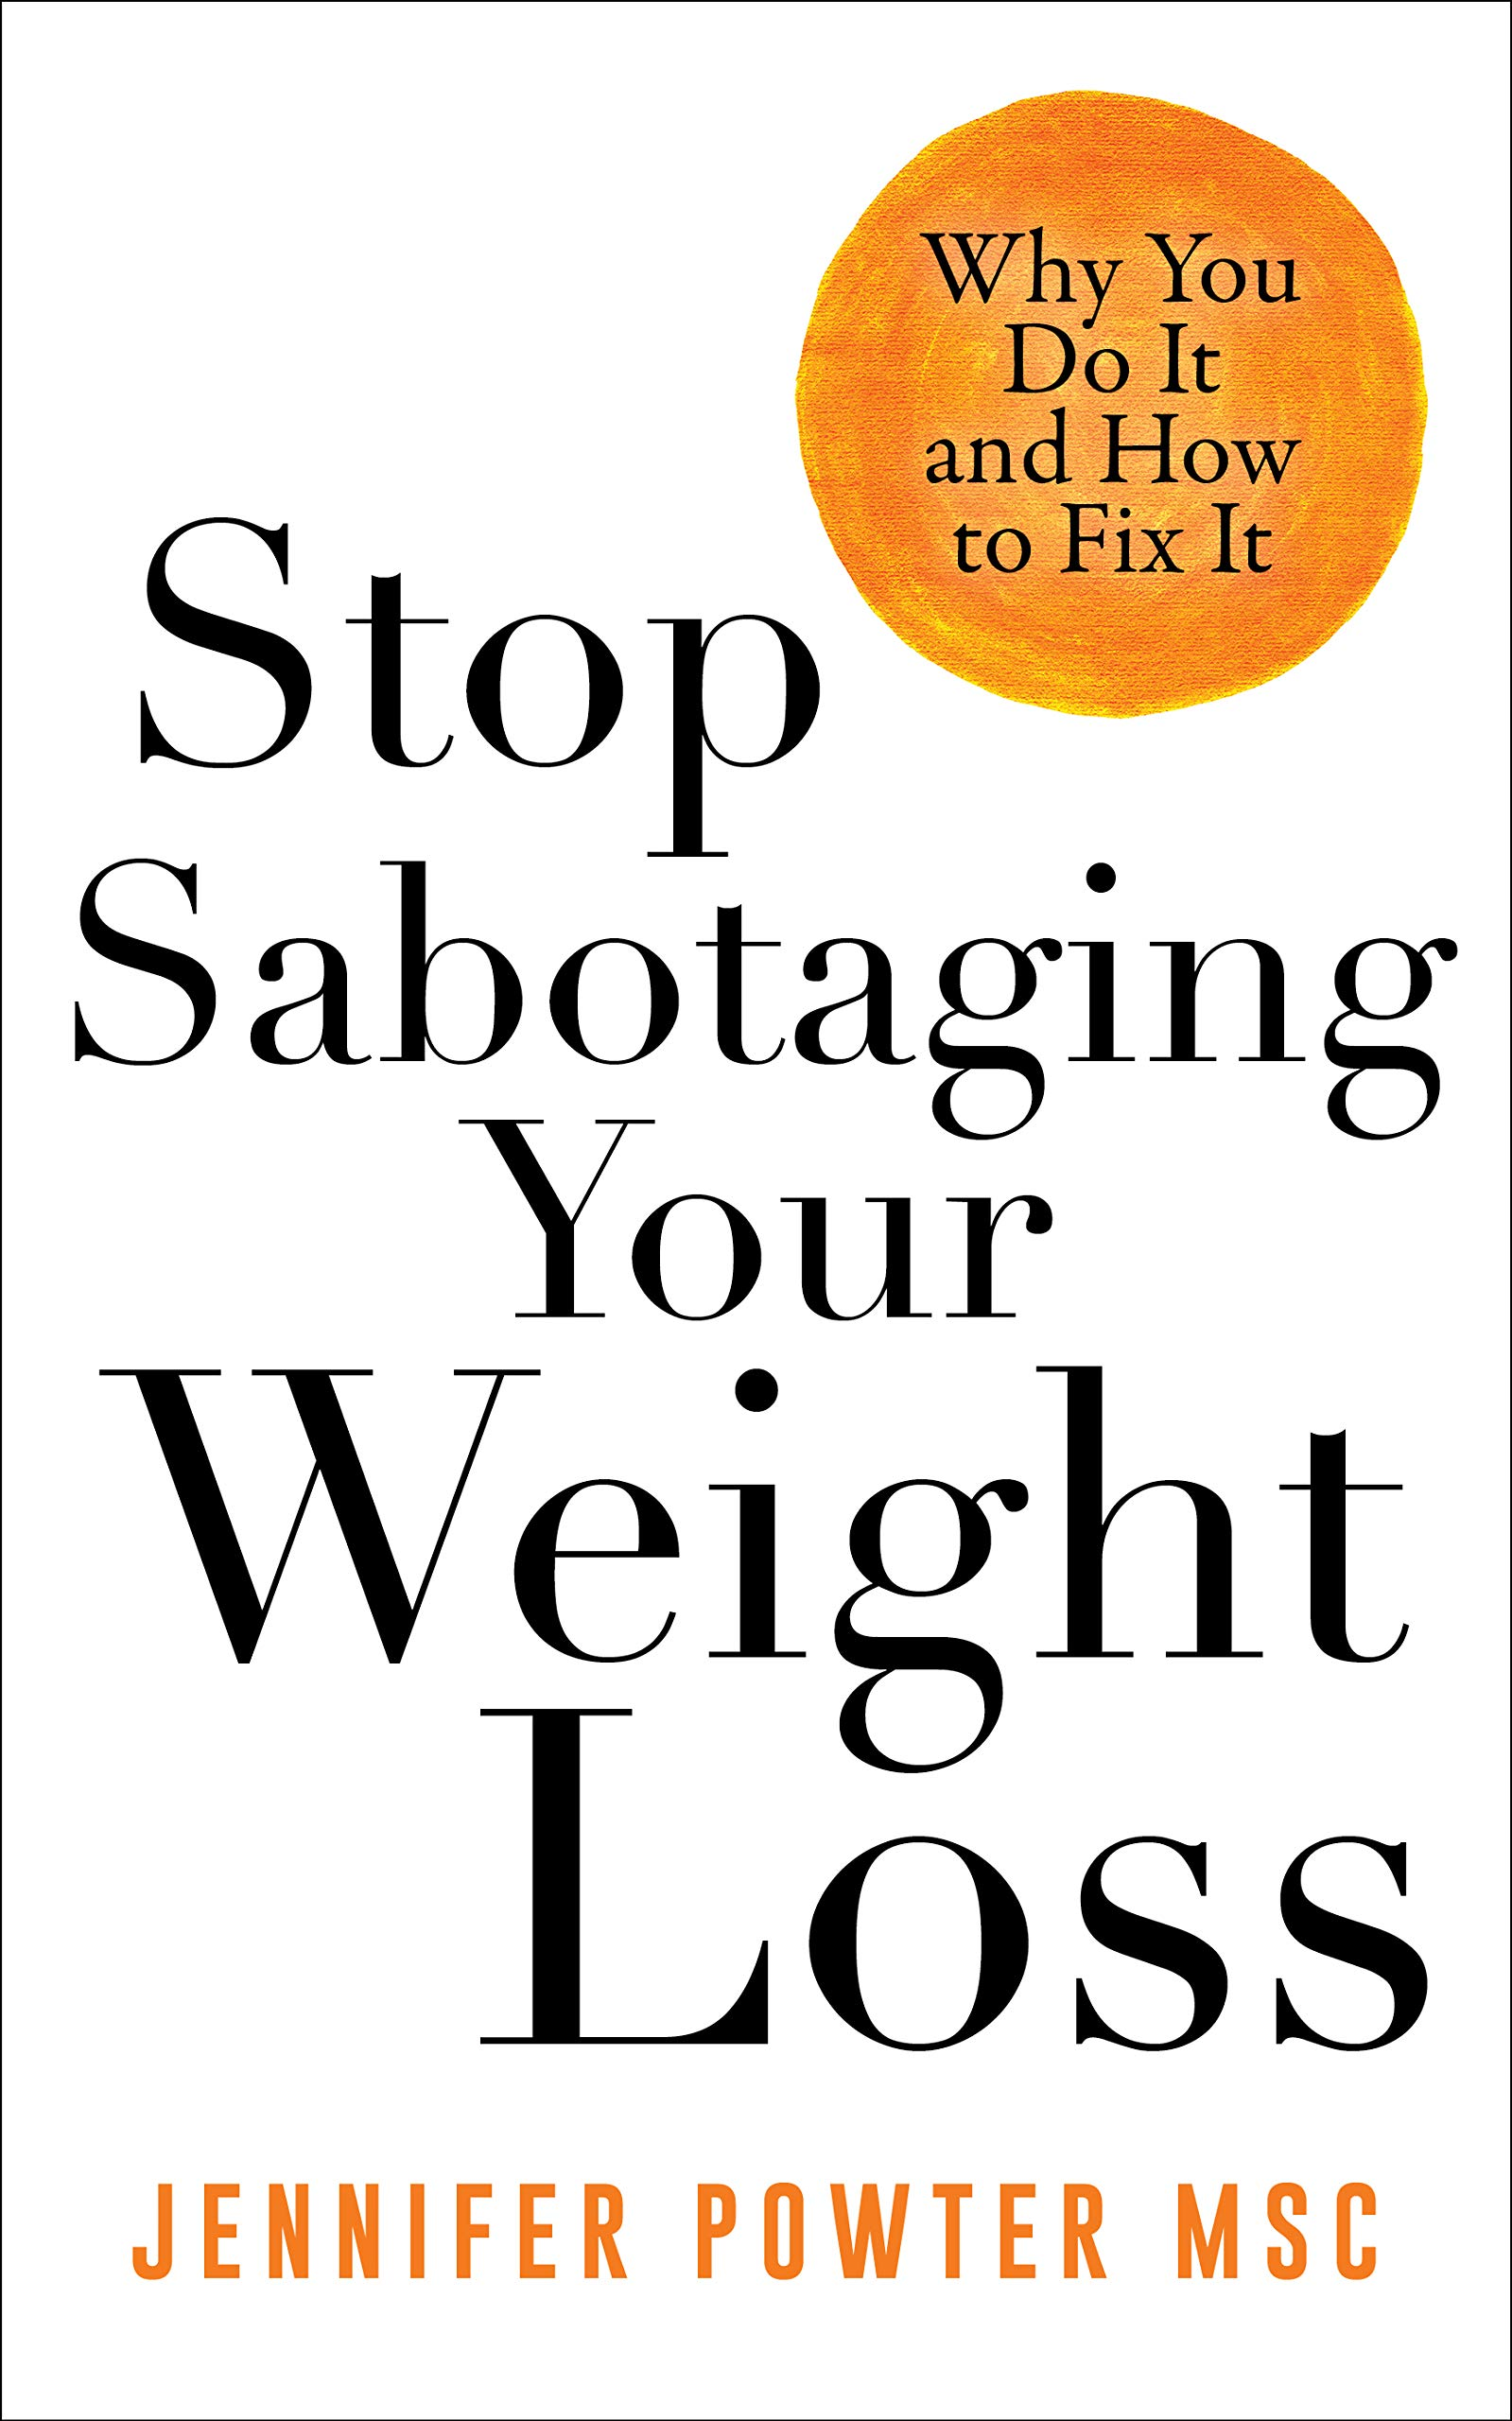 Stop Sabotaging Your Weight Loss: Why You Do It and How to Fix It